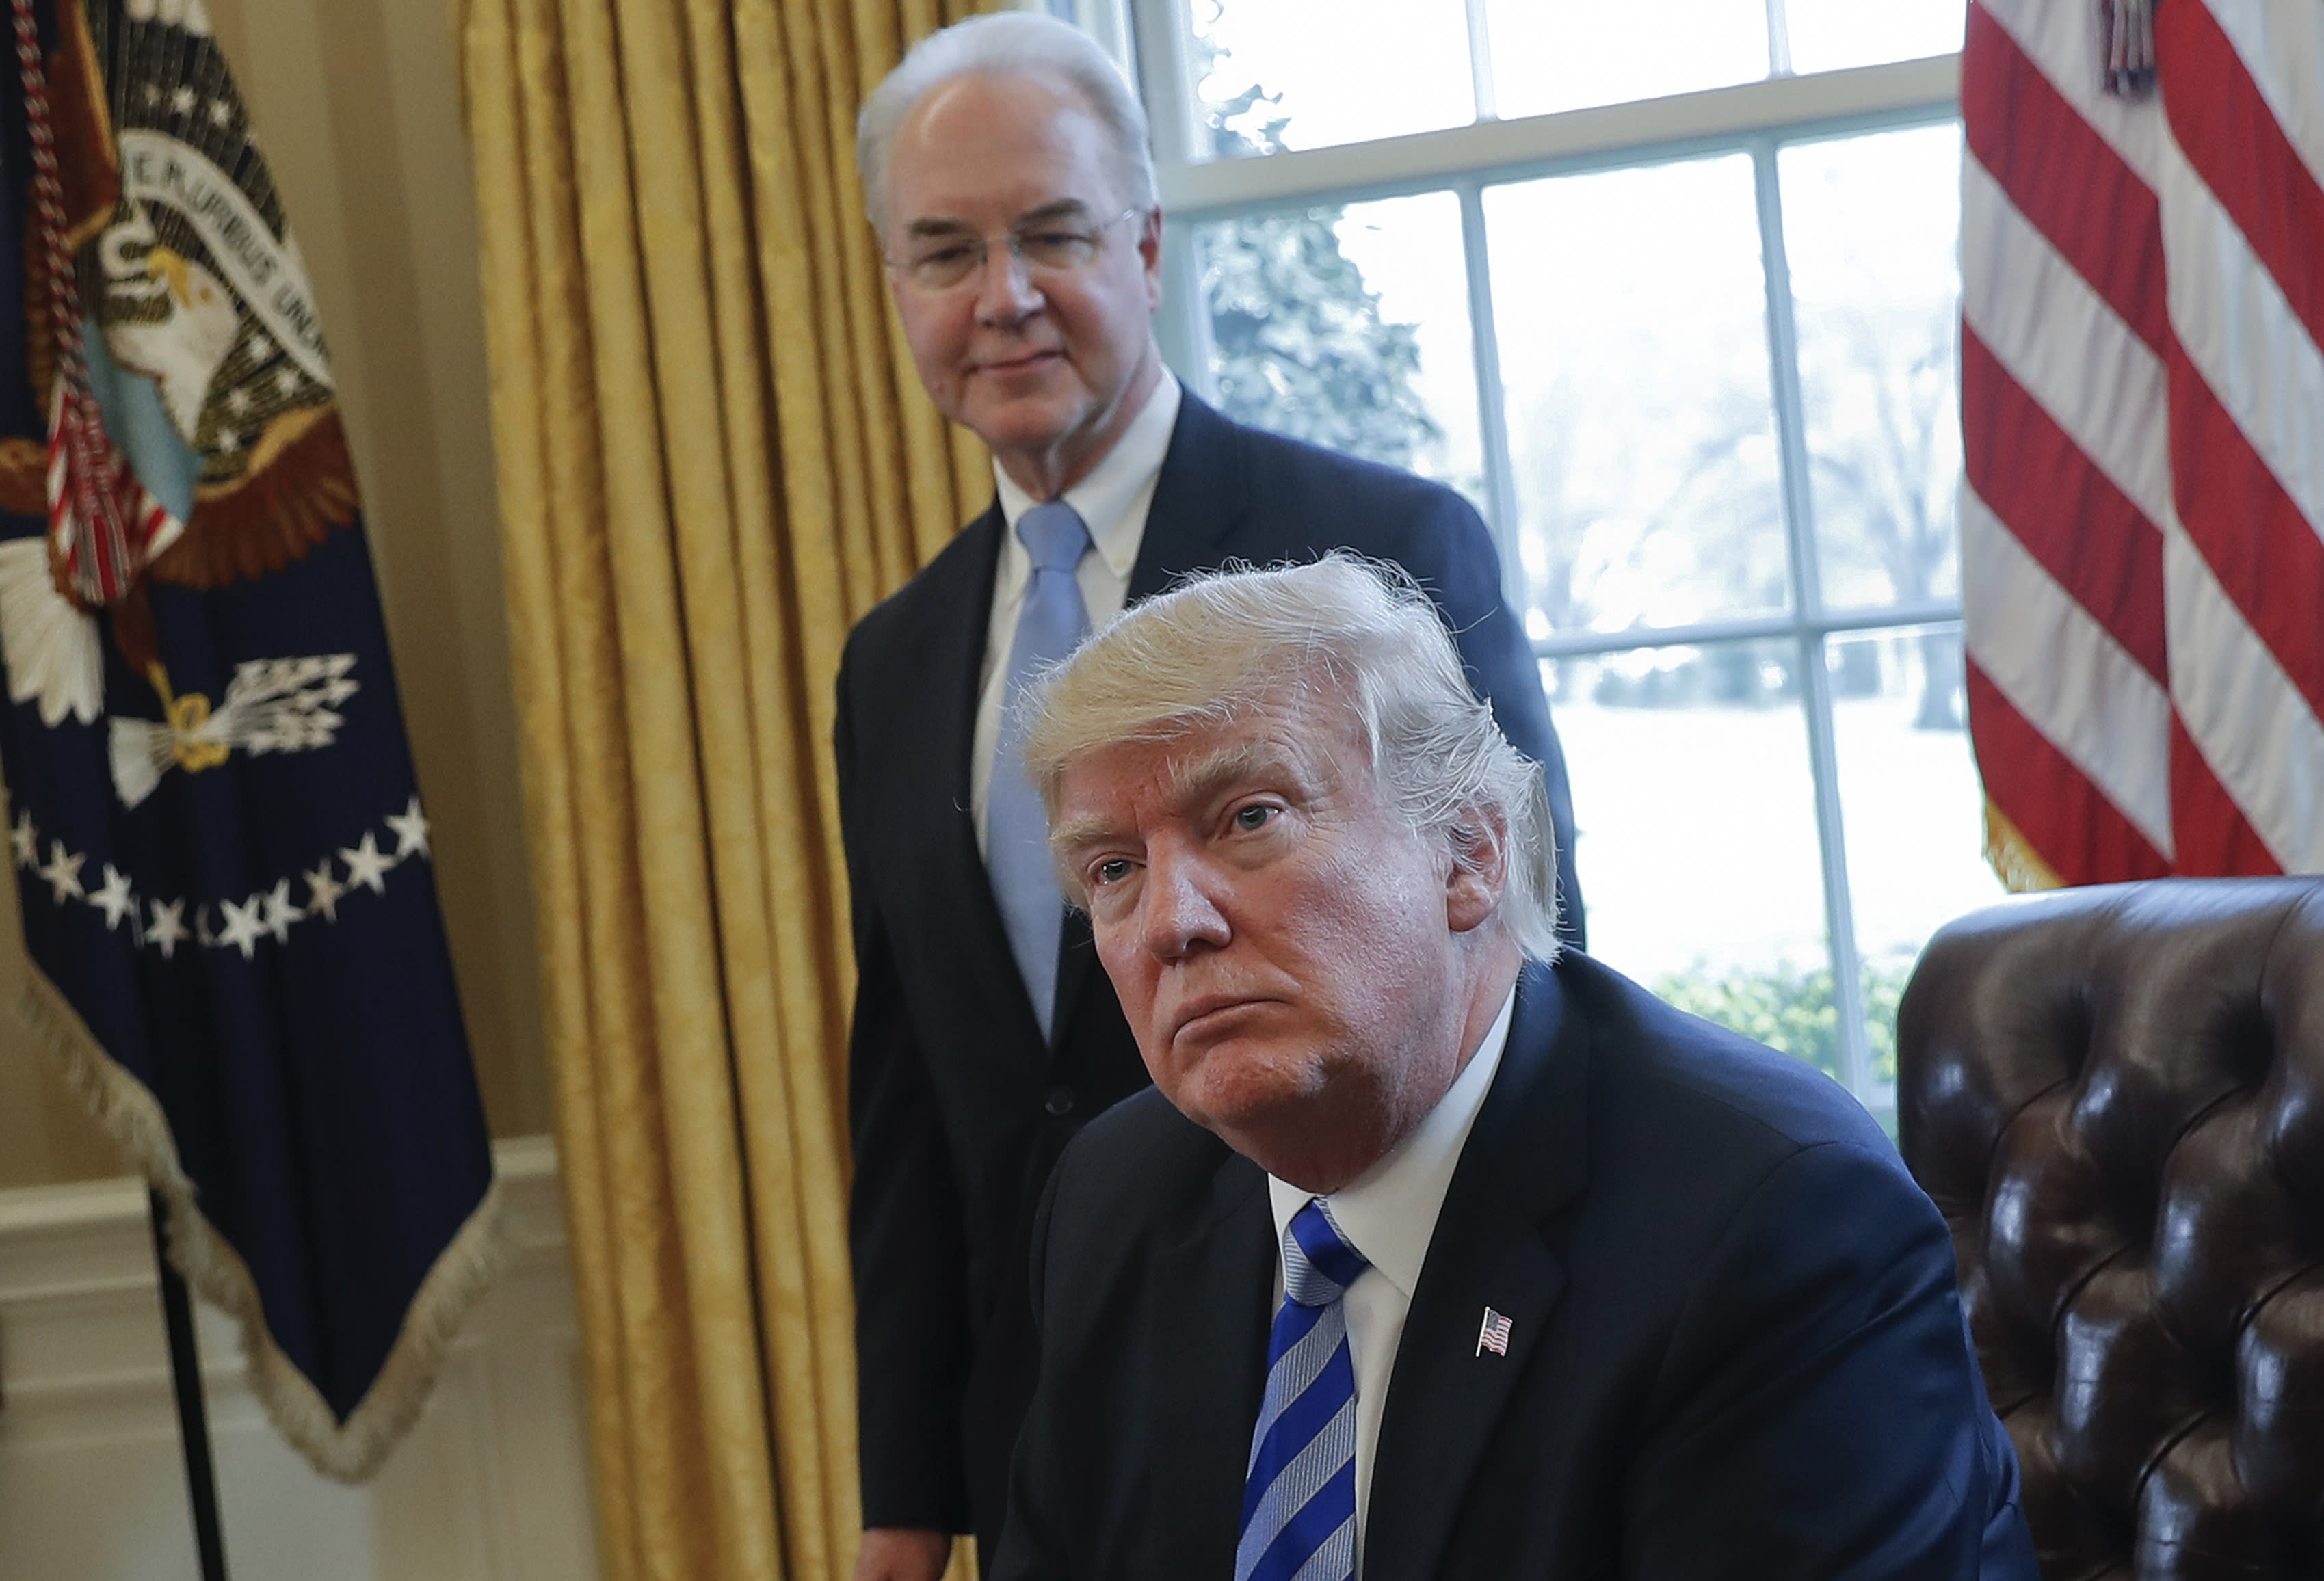 March 24, 2017, President Donald Trump with Health and Human Services Secretary Tom Price in the Oval Office (AP Photo/Pablo Martinez Monsivais)